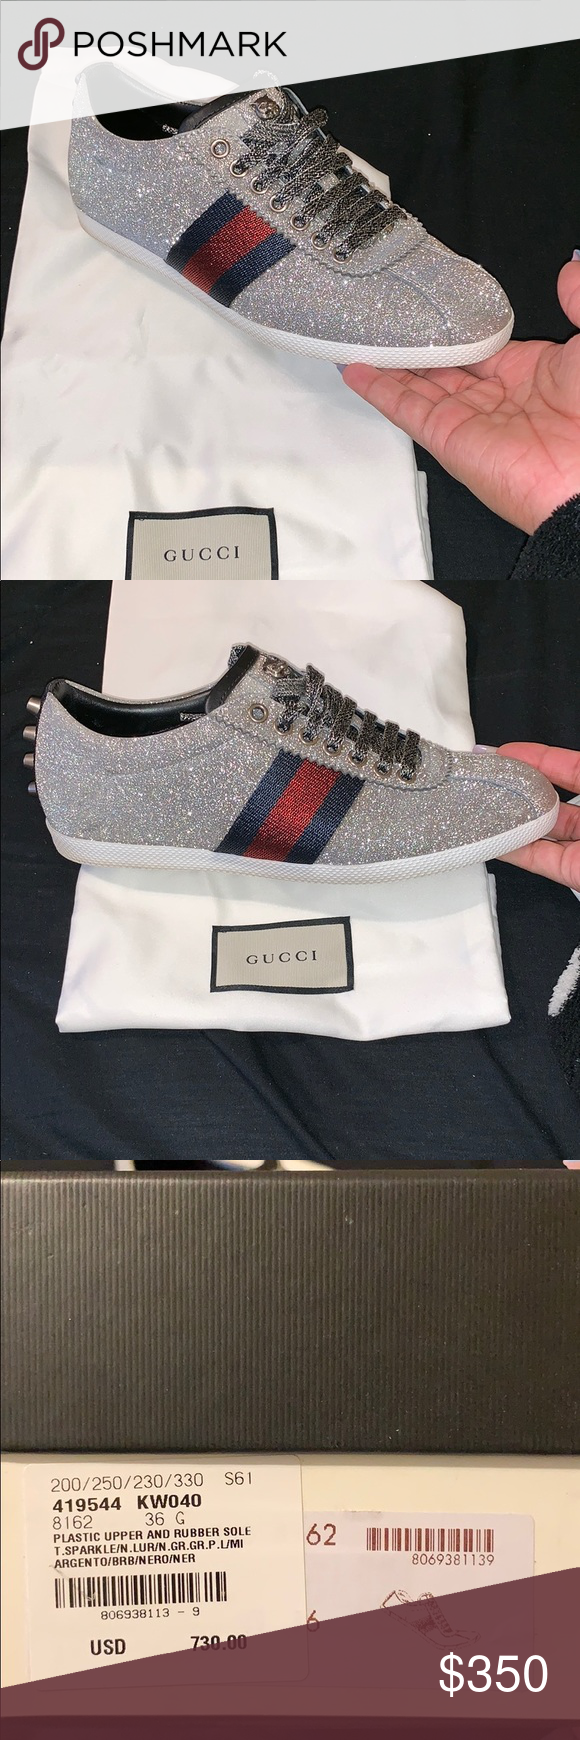 9737a641e Gucci sneakers only worn twice Plastic upper and rubber sole T.sparkle  (navy & red striped) Size 6 Gucci Shoes Sneakers